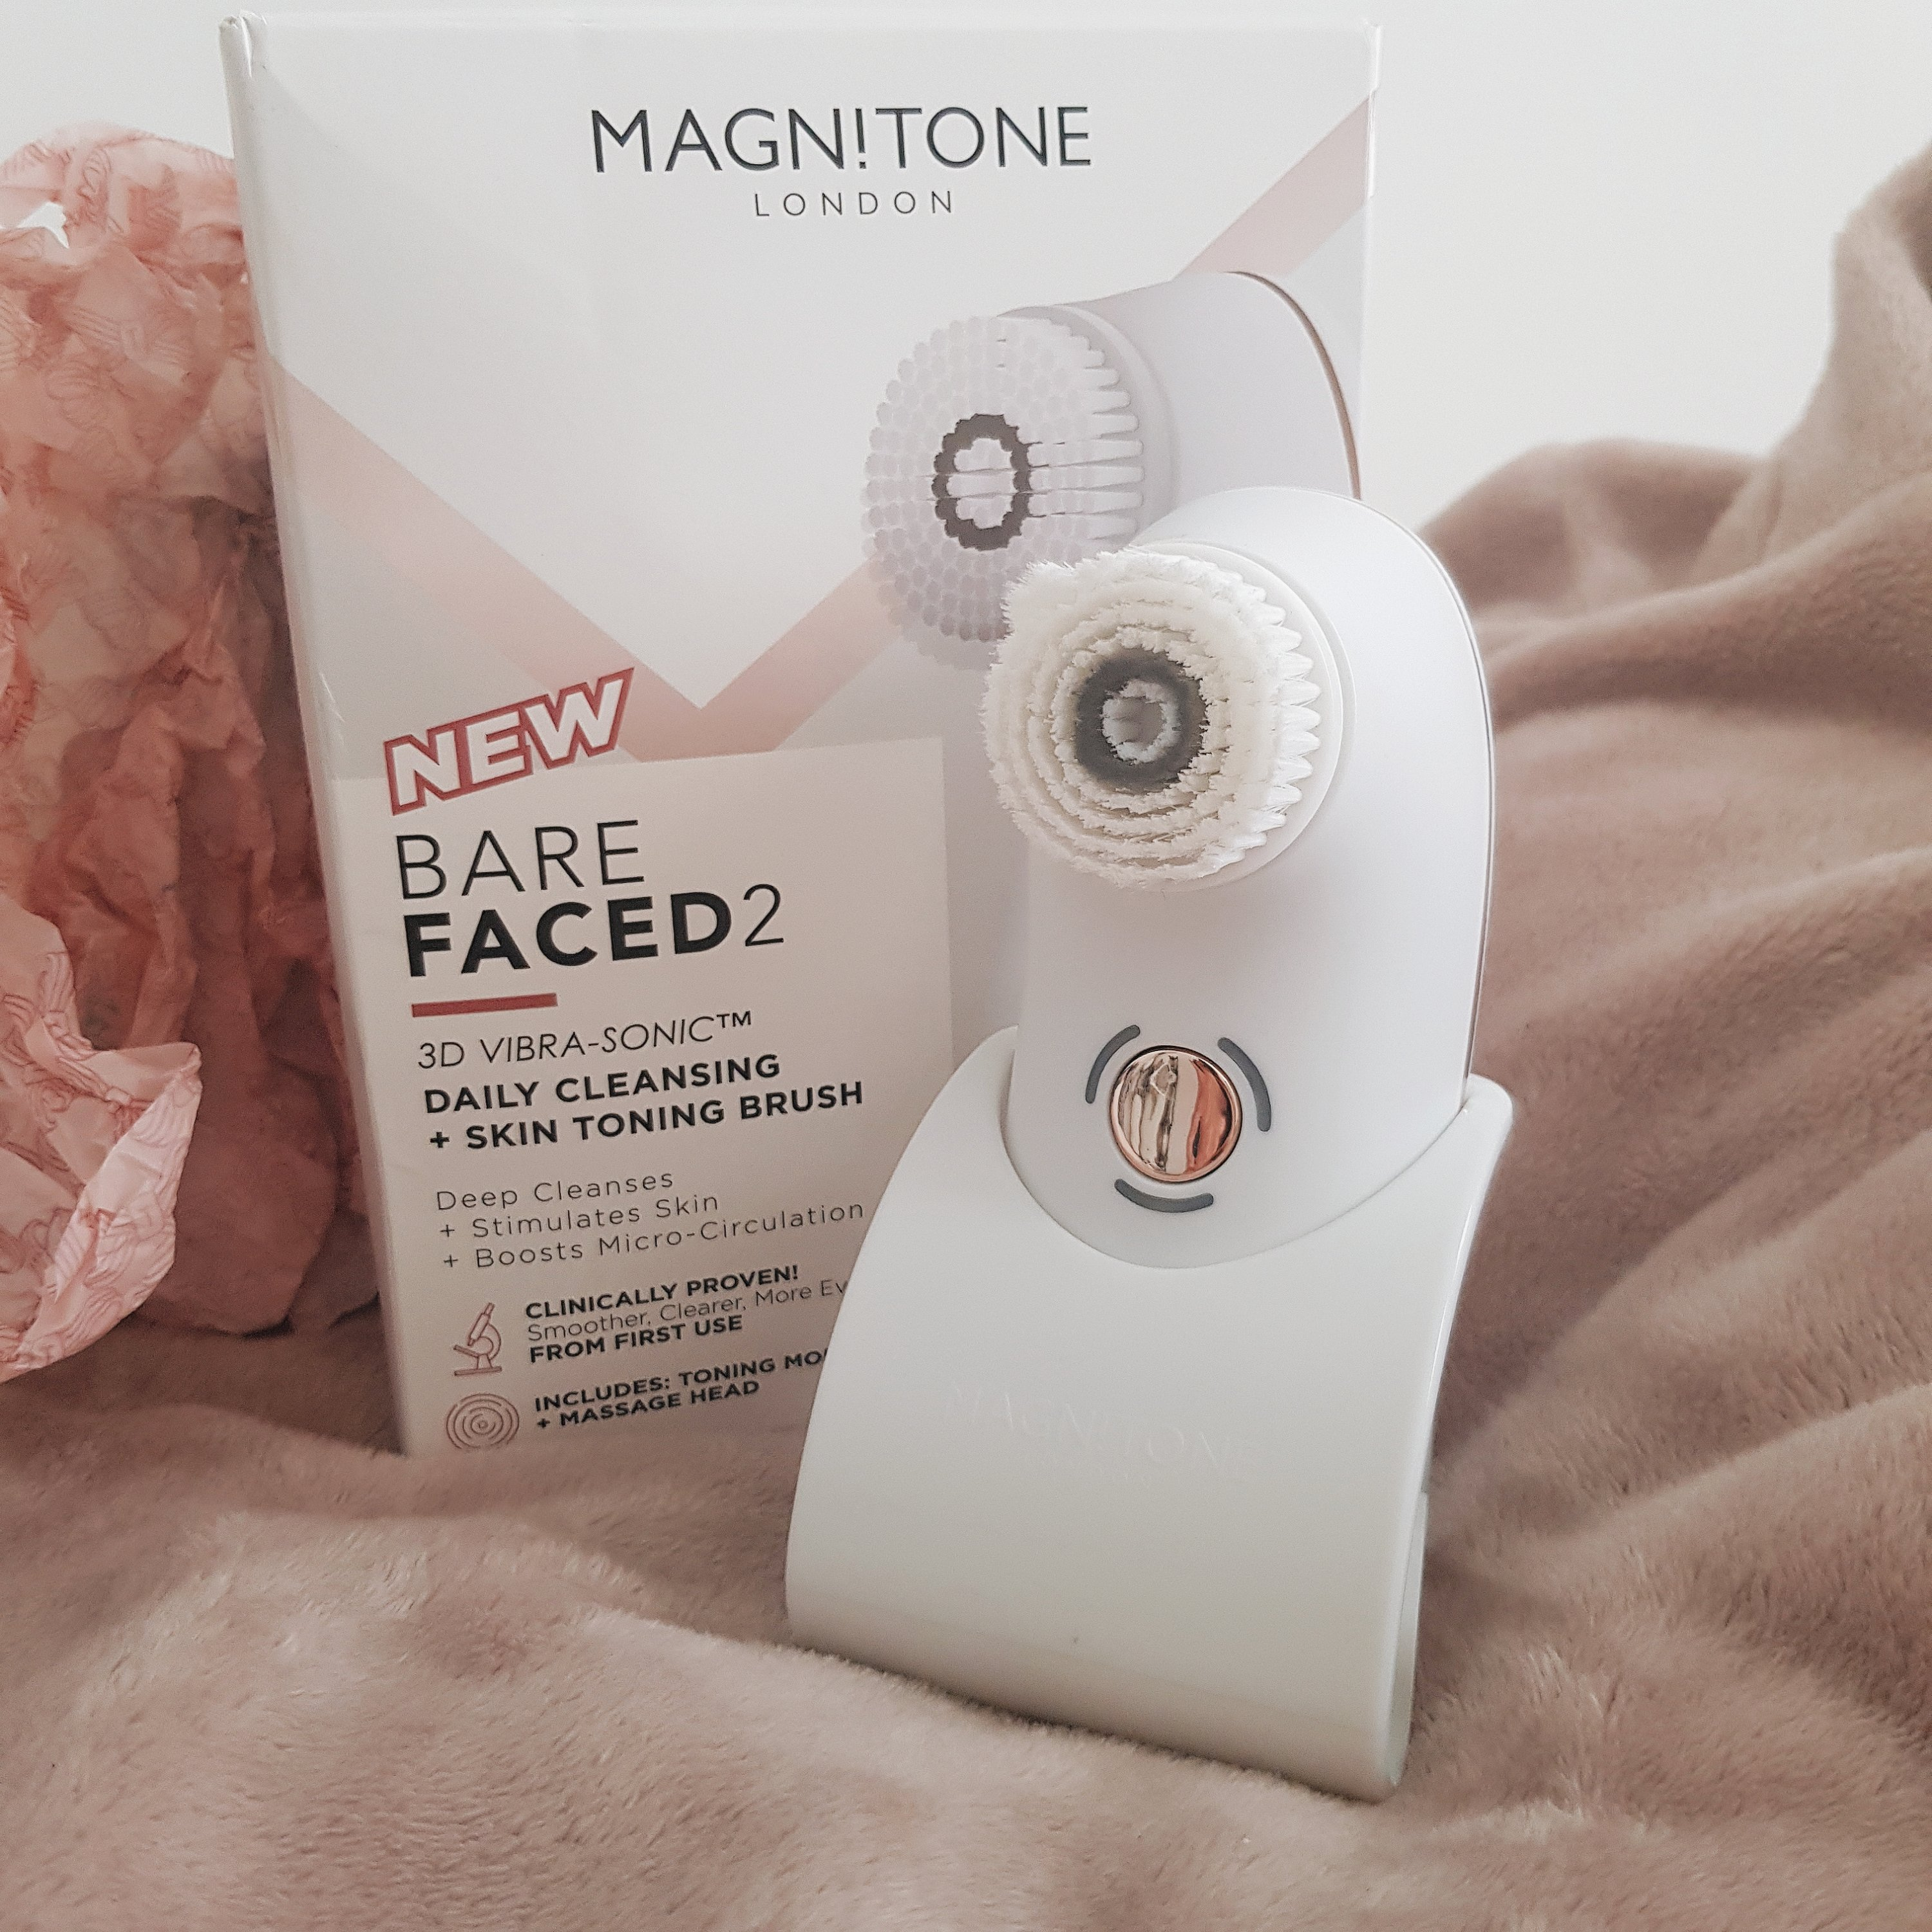 Magnitone Barefaced 2 3D Vibra-Sonic Cleansing and Toning Brush